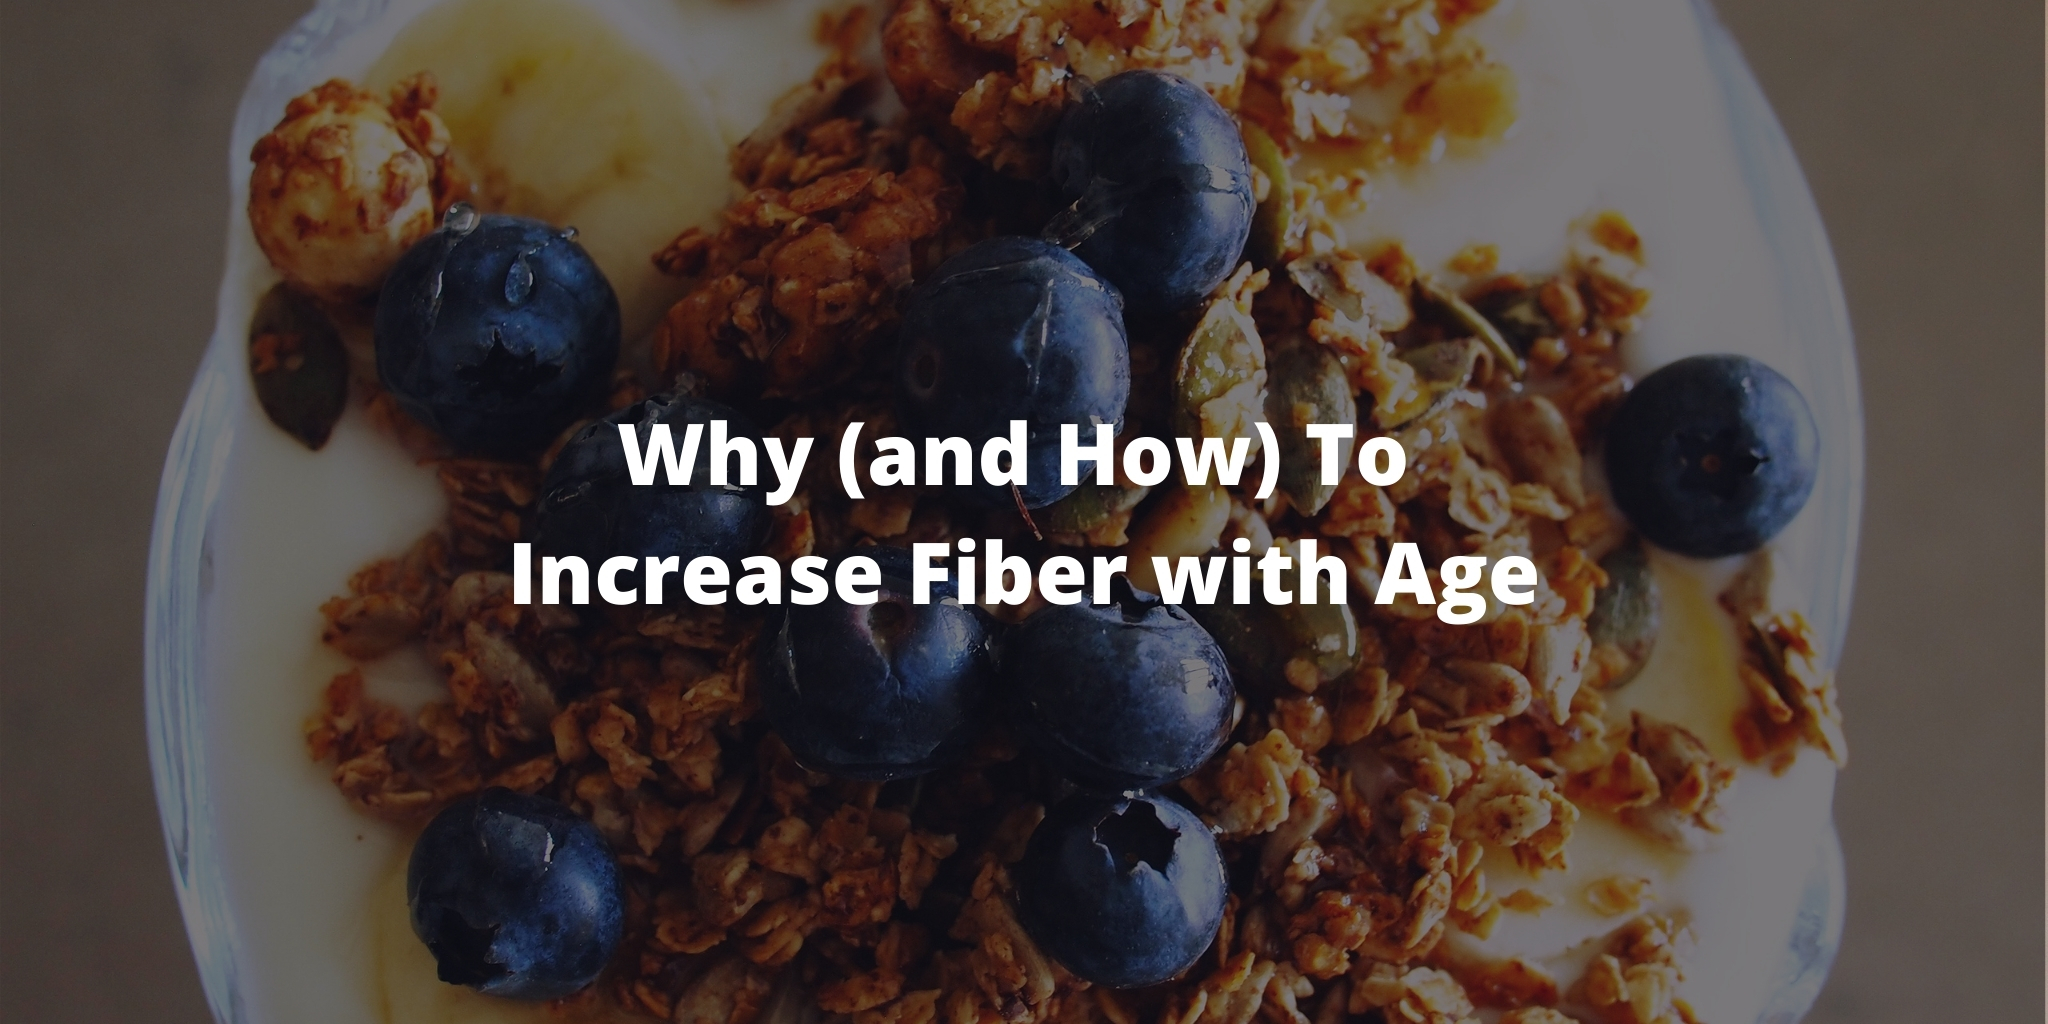 Why (and How) To Increase Fiber with Age